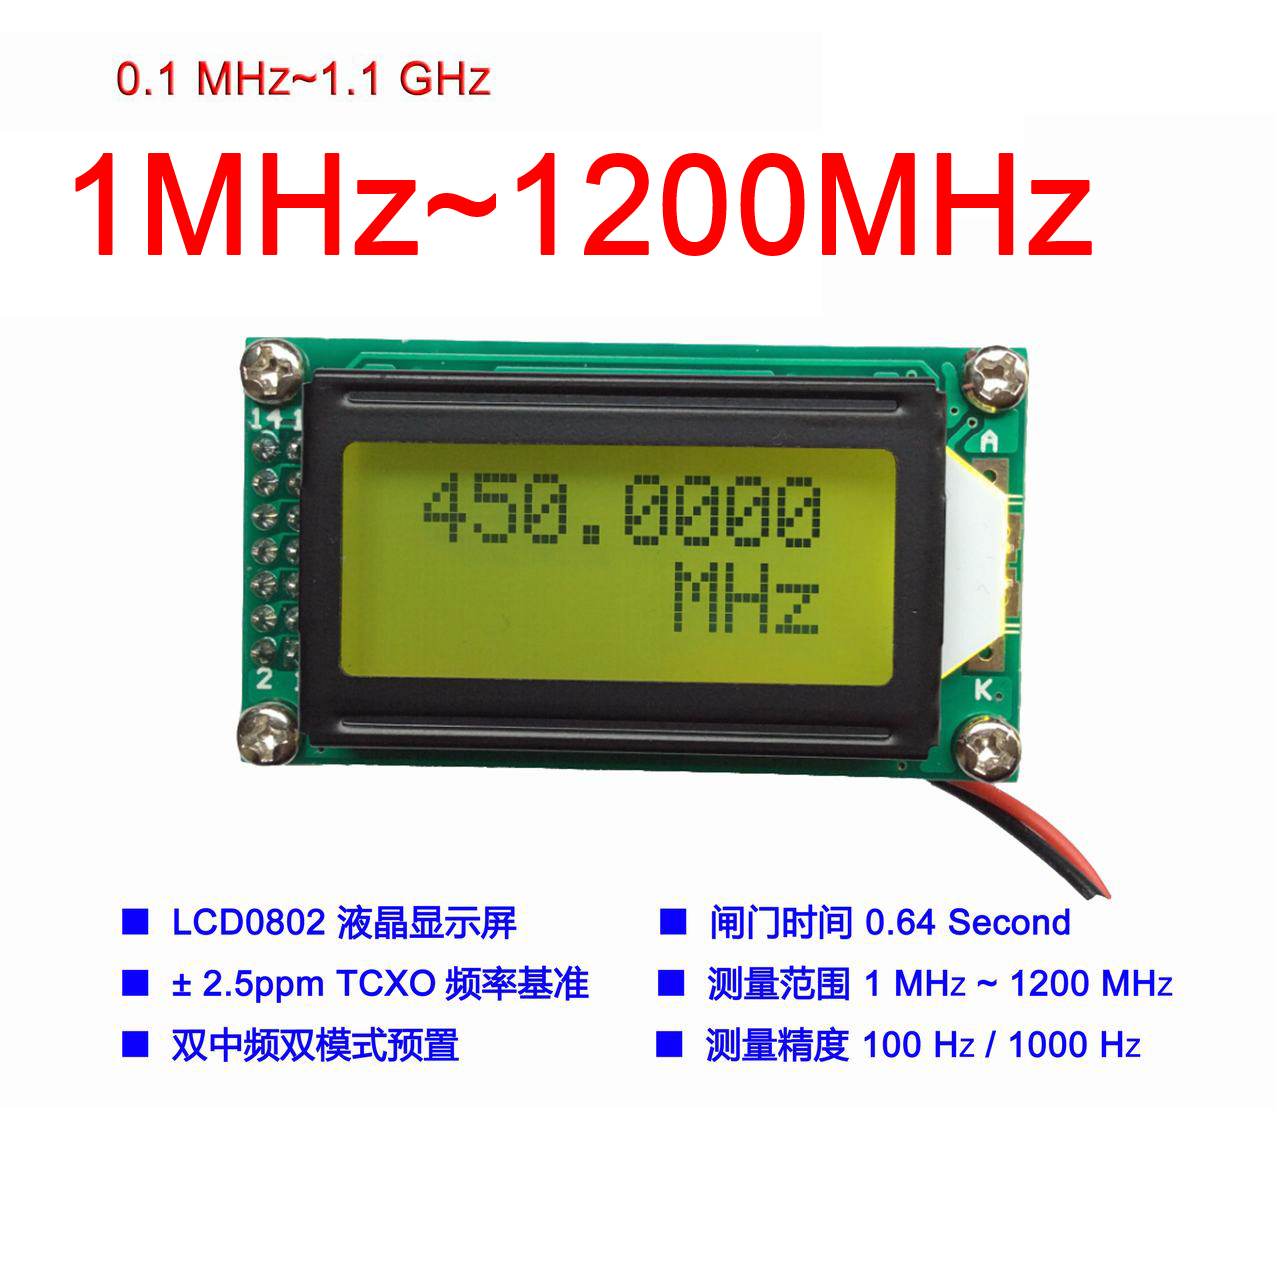 01 60mhz 20mhz 24ghz Rf Singal Frequency Counter Tester Green 8 24 Ghz Field Strength Meter Circuit With Optional Amplifier 1mhz1200mhz 12 Digital Led Pic16f648a For Ham Radio